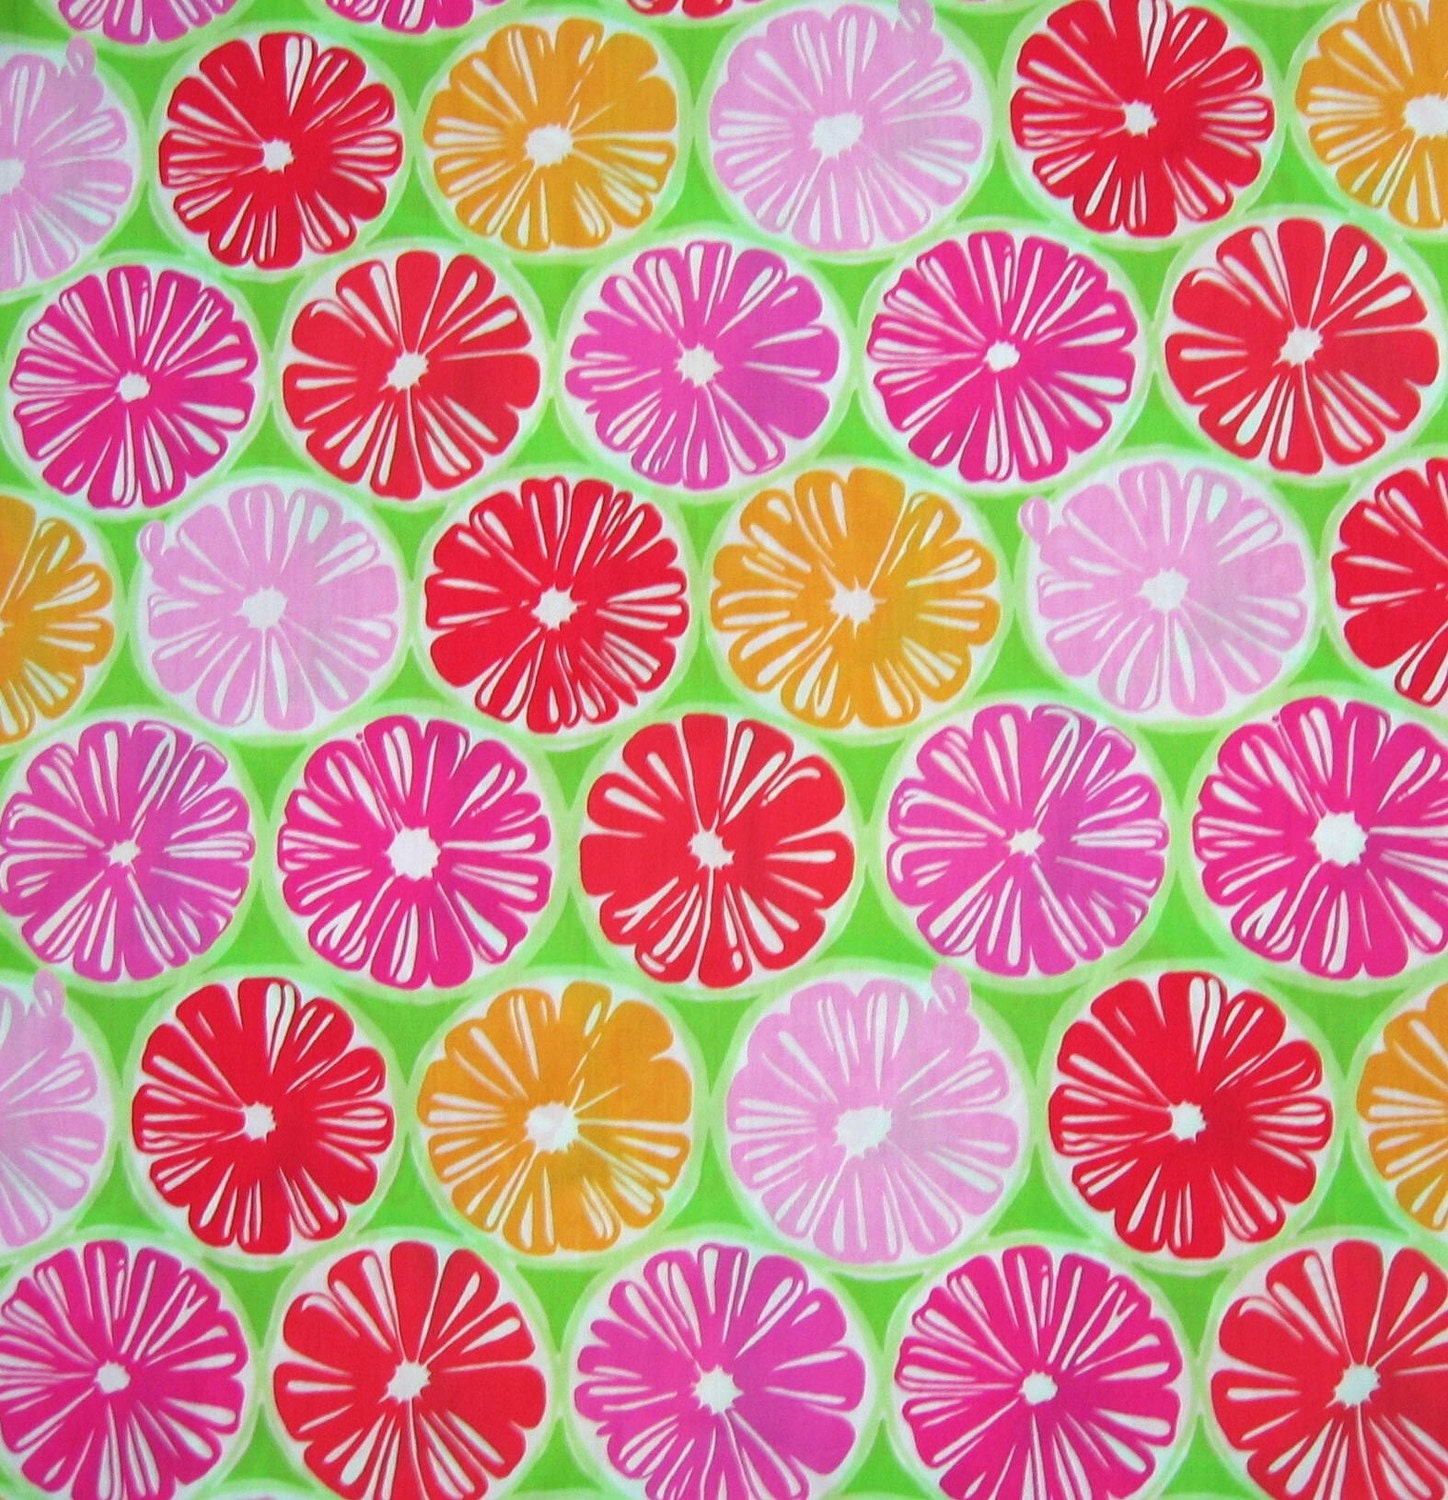 Lilly Pulitzer Fabric Authentic New Lilly Pulitzer Fabric Juice Stand 16 X 18 Inches